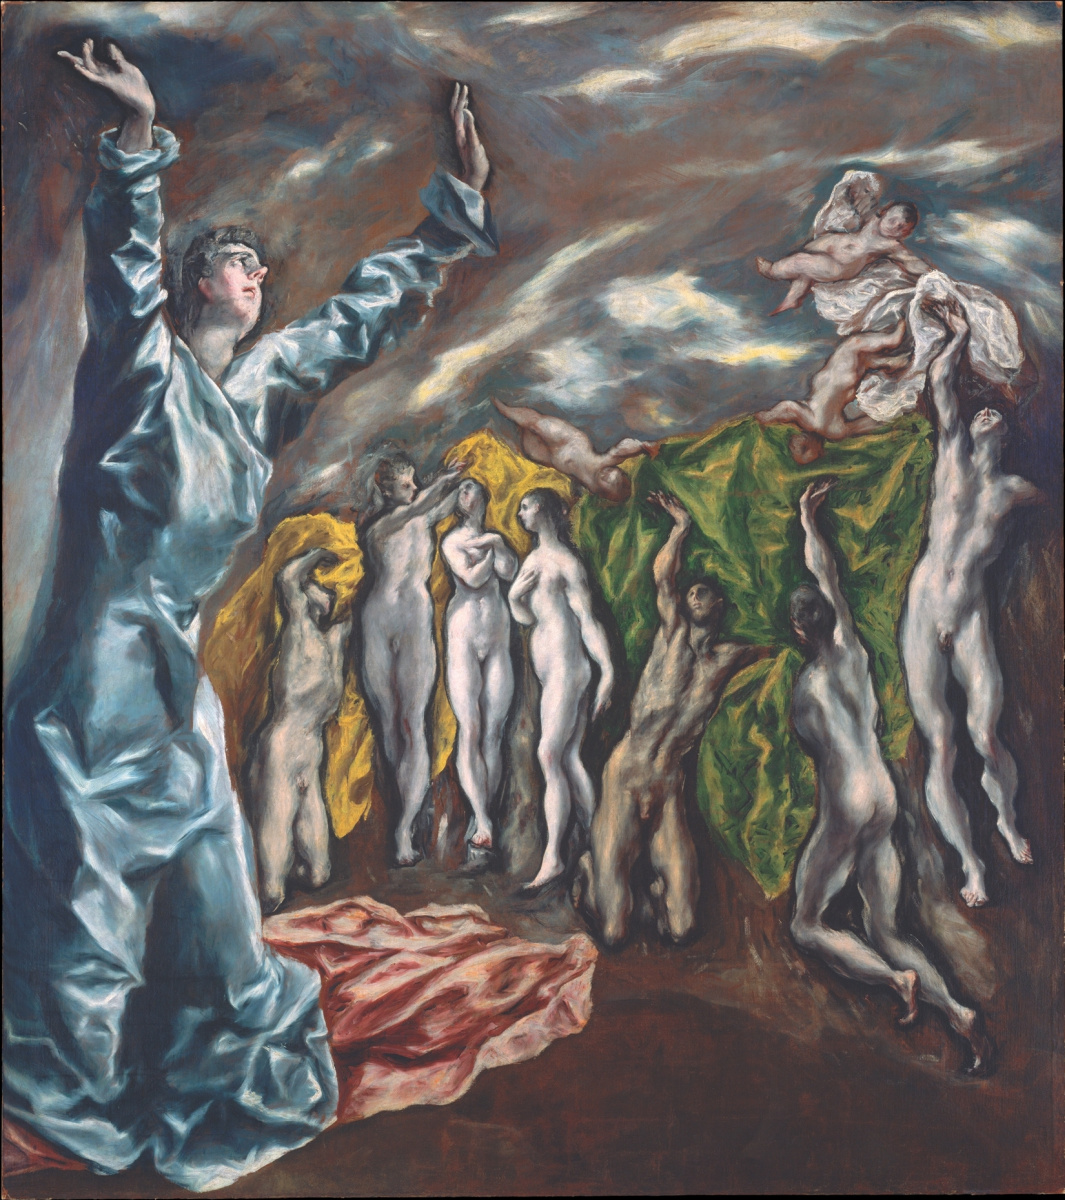 Domenico Theotokopoulos (El Greco). Opening of the Fifth Seal (Vision of St. John the Theologian)